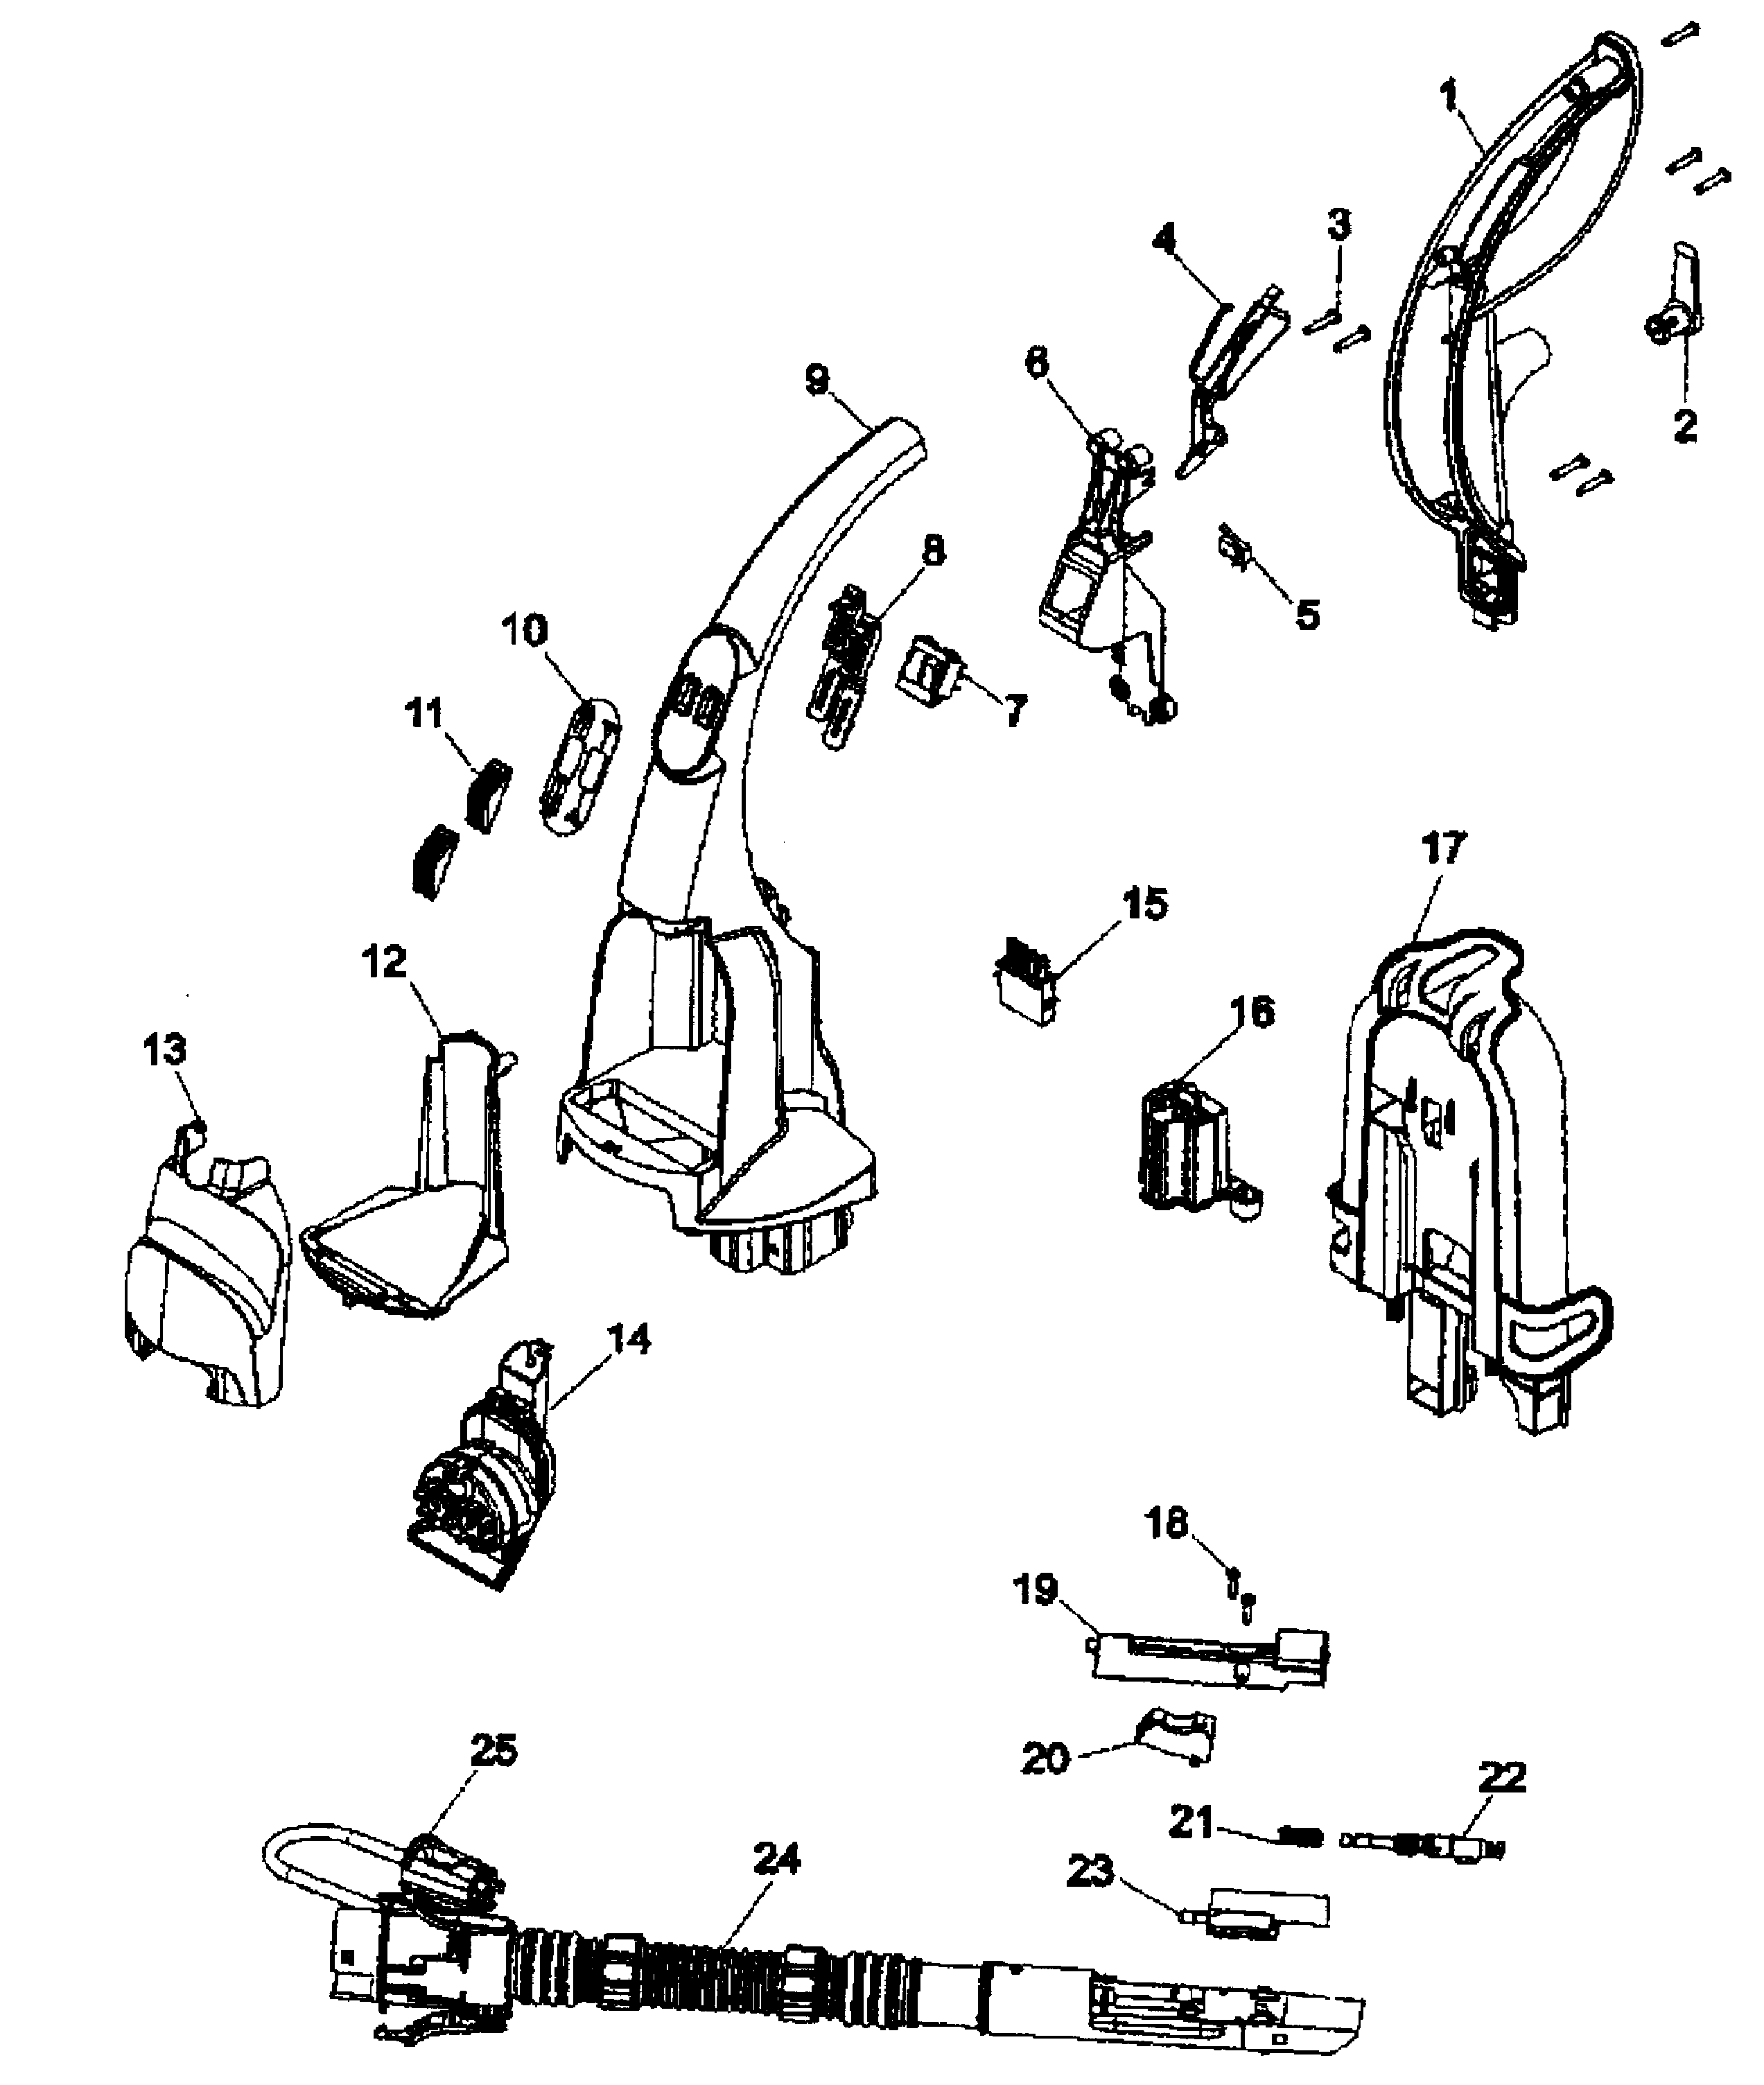 hoover dual v carpet cleaner instructions